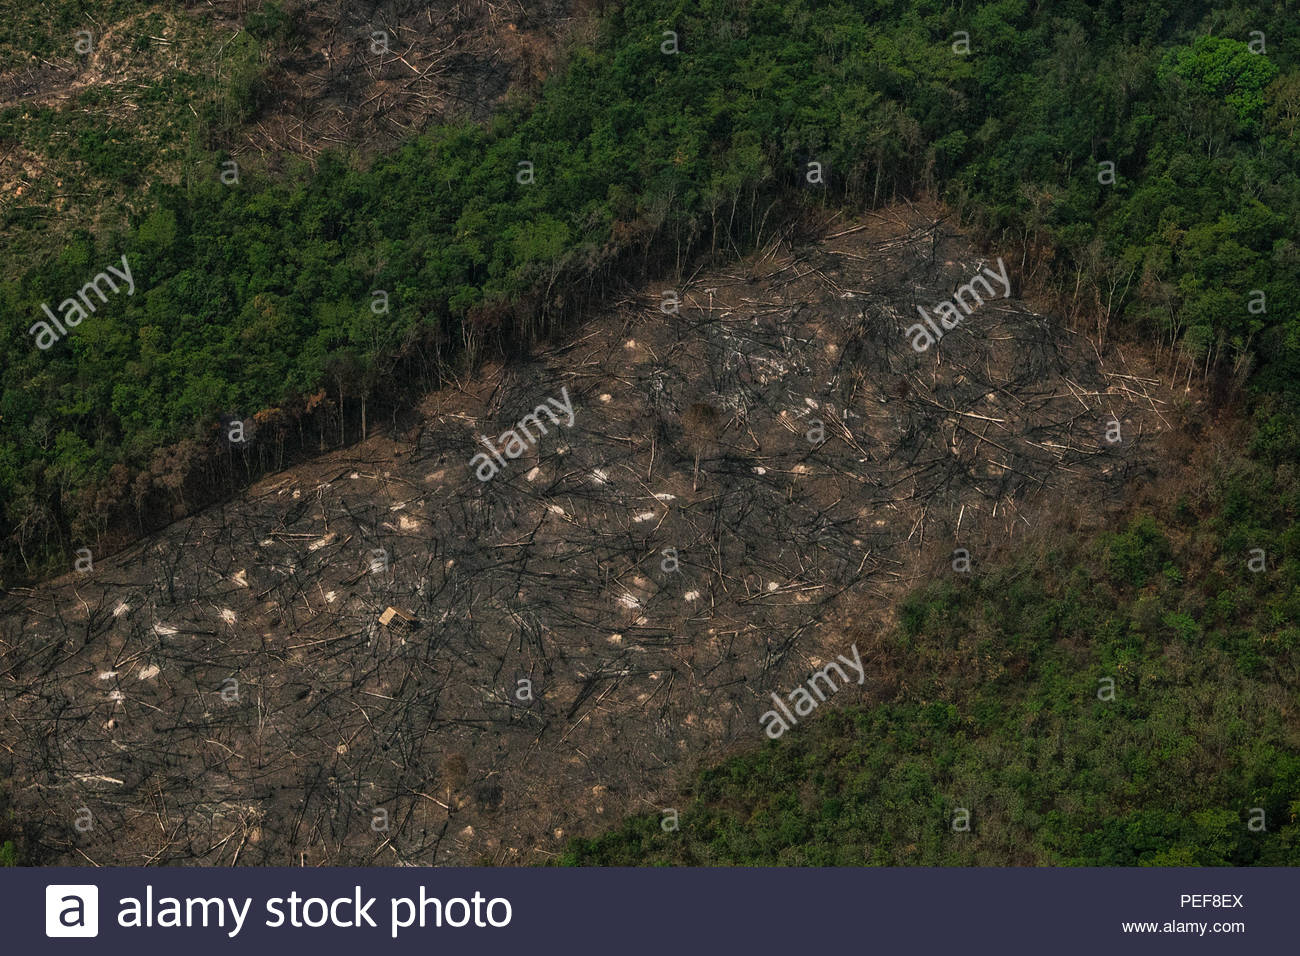 Aerial view of deforestation in the jungles of the Cardamom mountains in Cambodia. - Stock Image